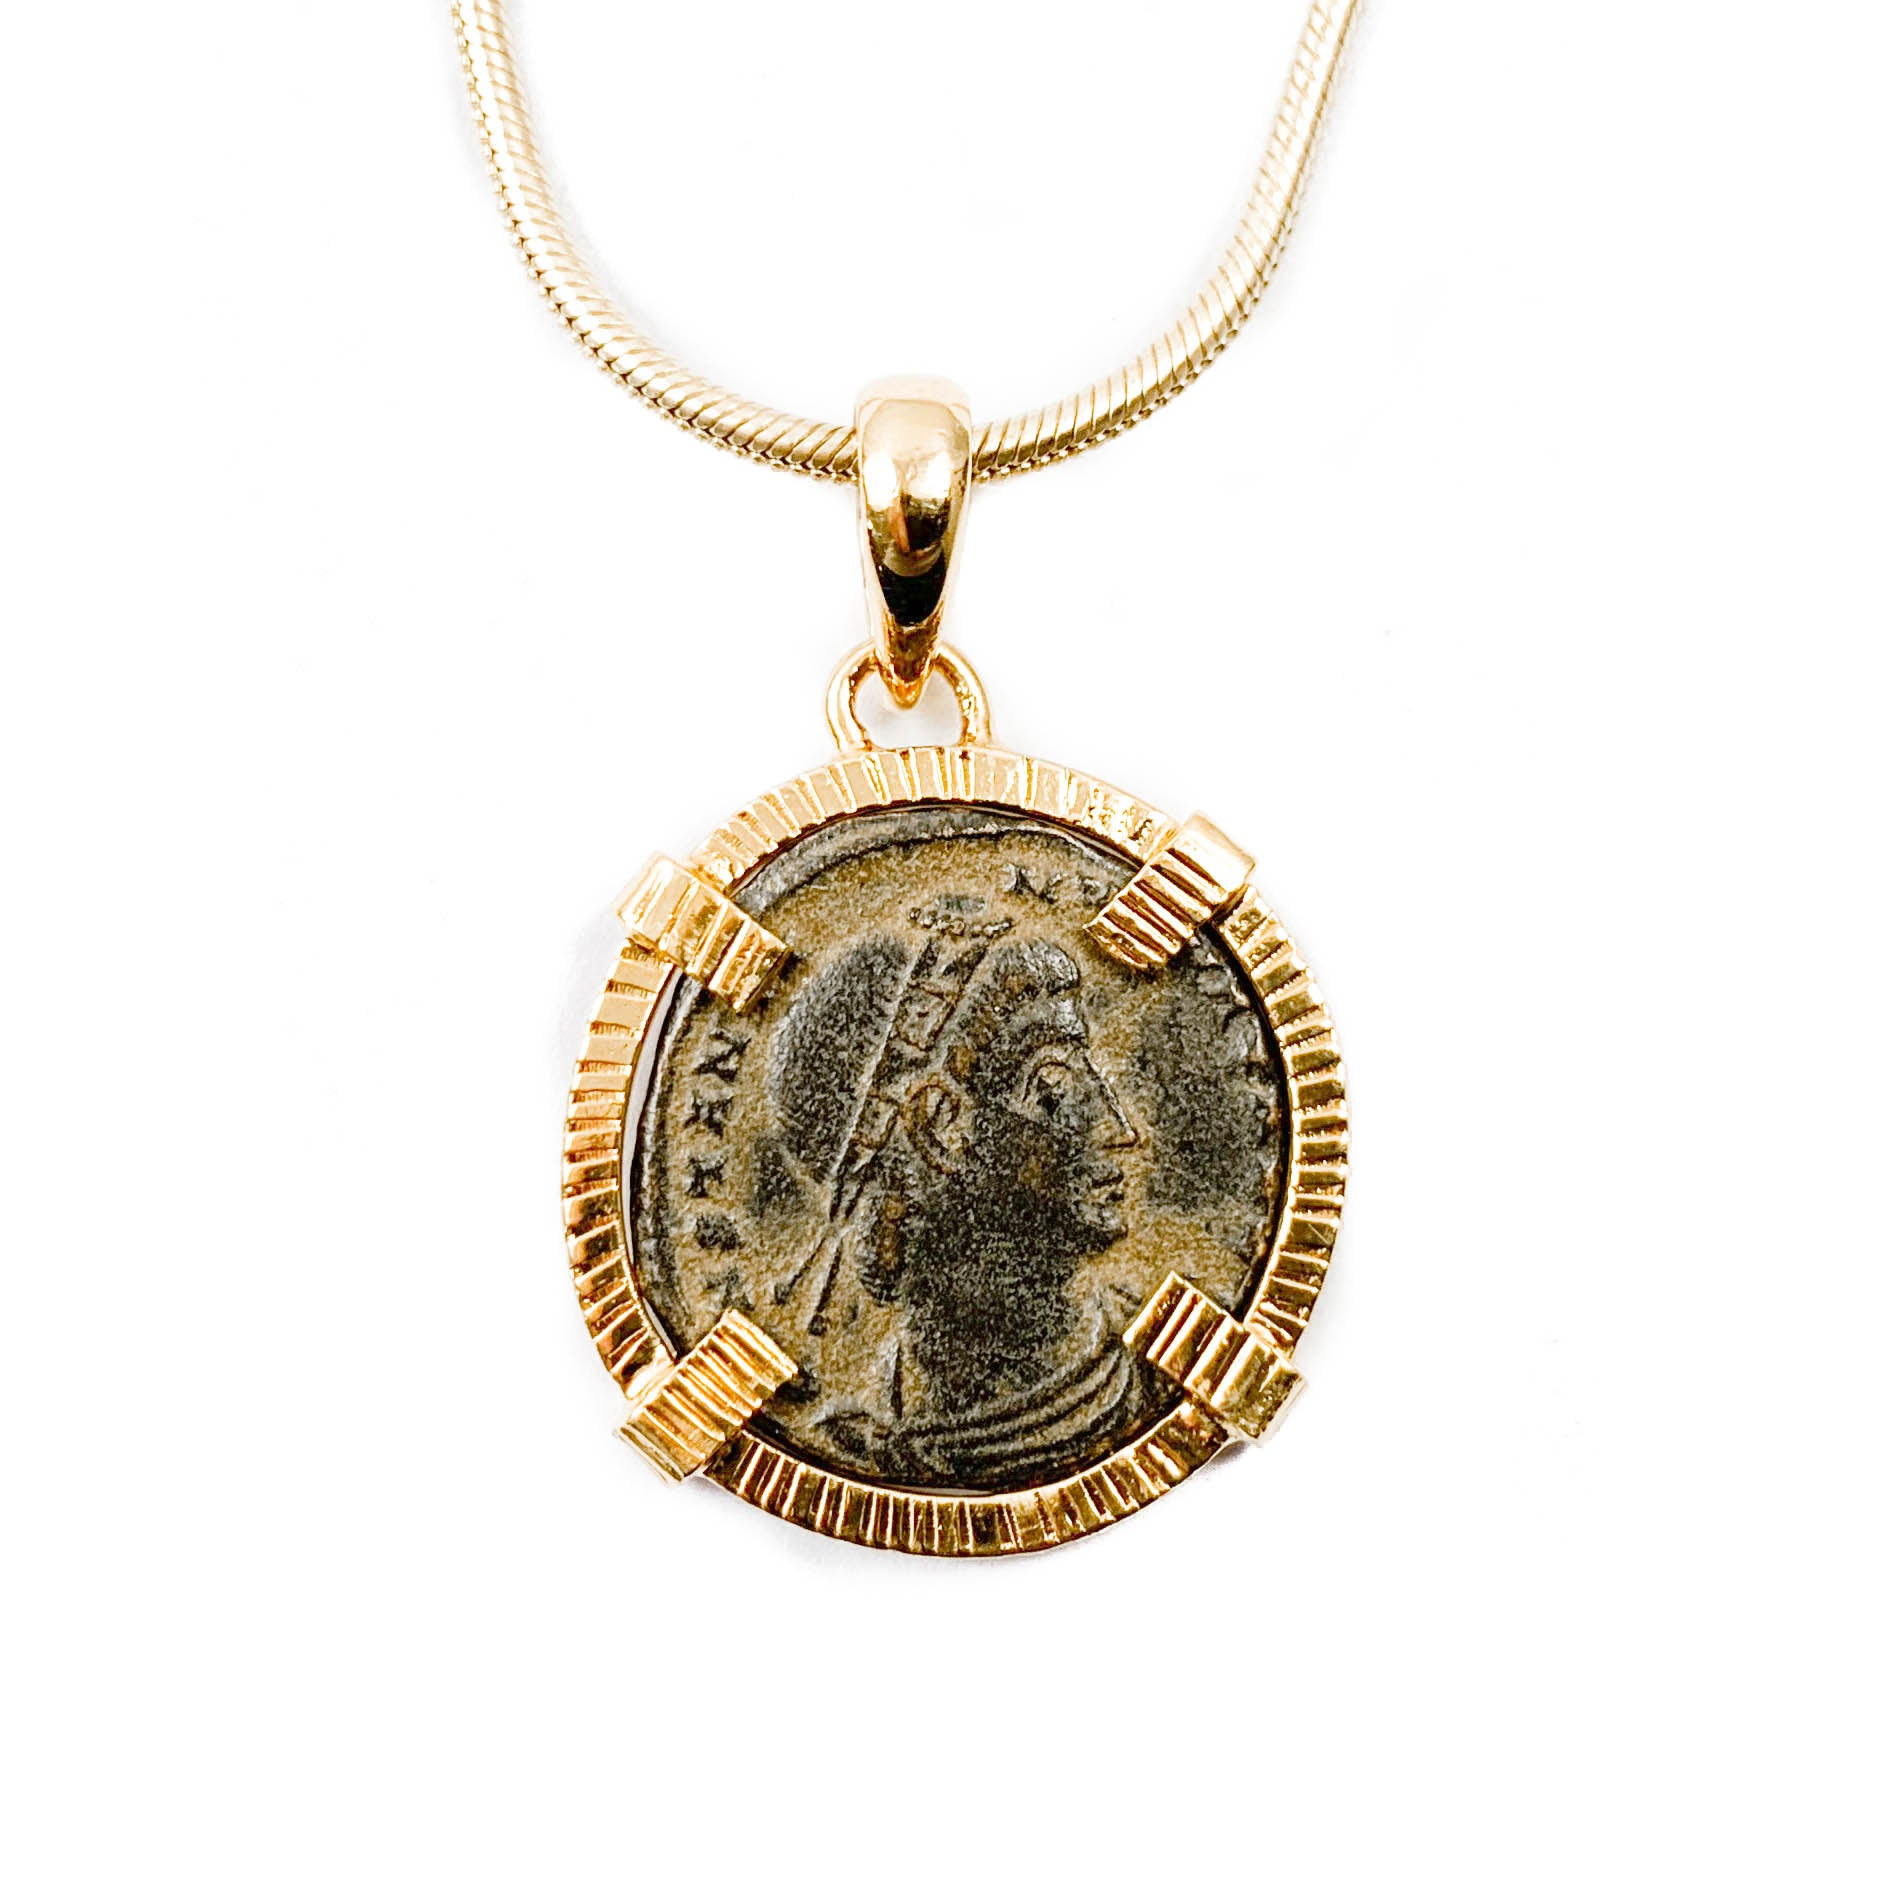 Genuine Ancient Roman Coin Necklace (CONSTANTIUS II; 337-361 A.D.)